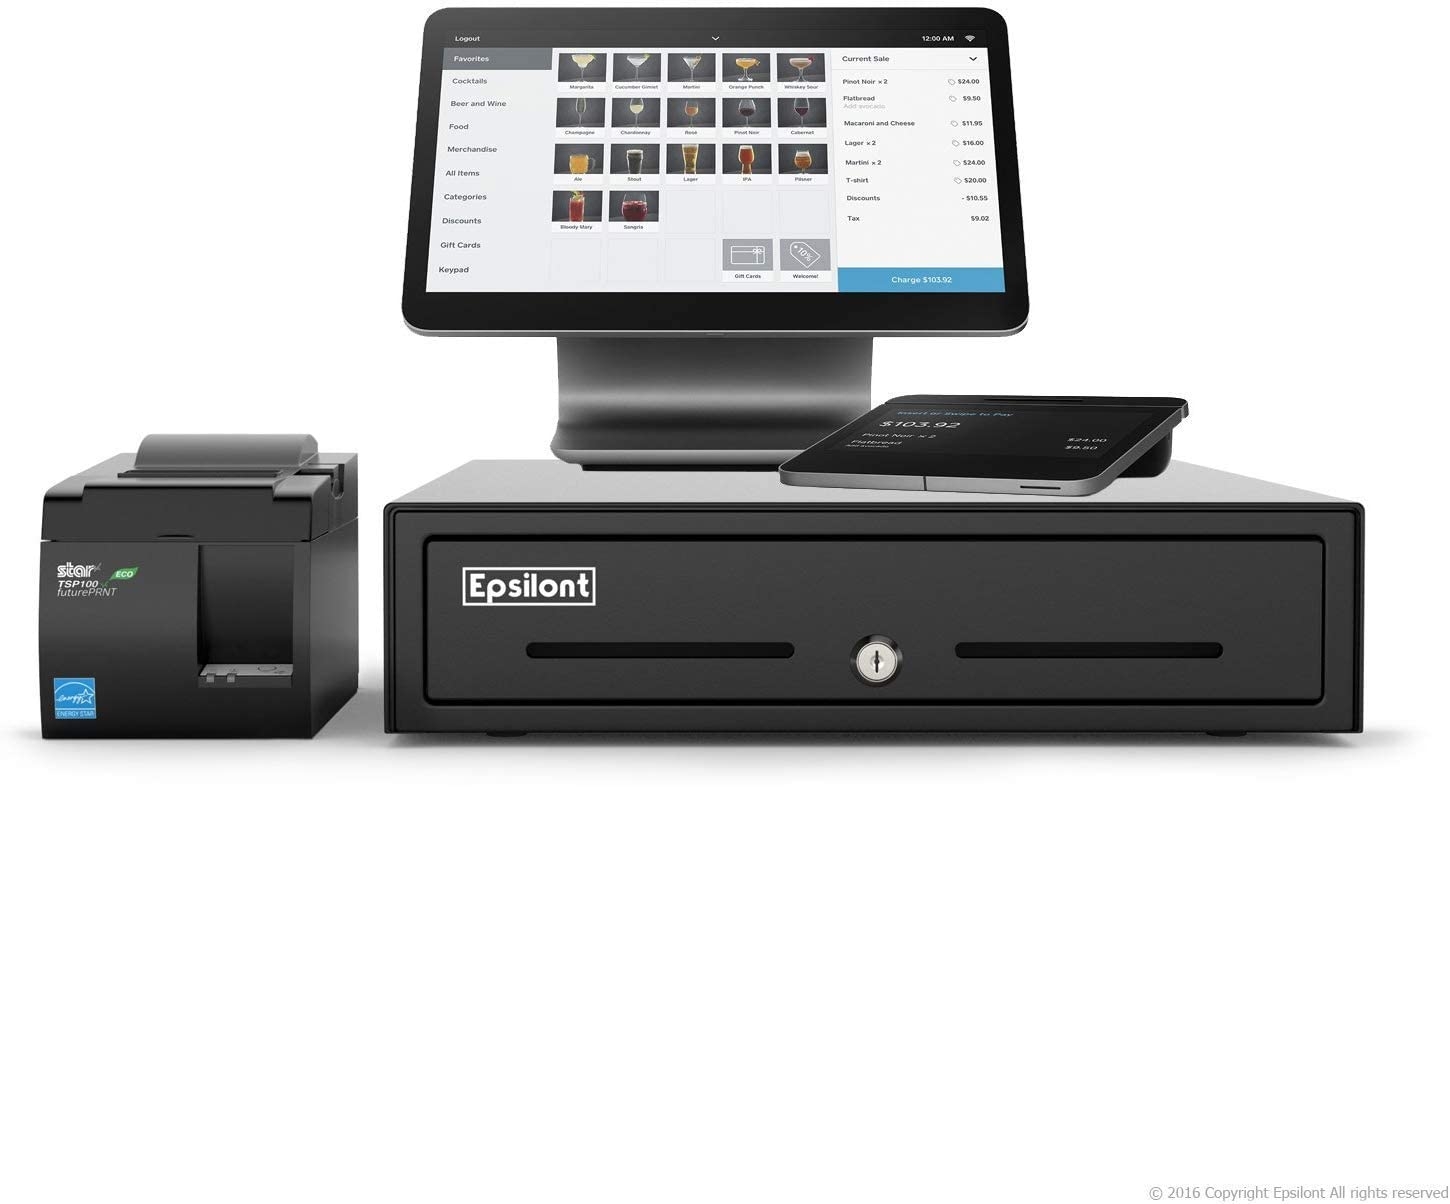 Complete Square Register - Comes with Android Based Dual Display, MAGSTRIPE, CONTACTLESS (NFC), CHIP (EMV), Star Micronics USB Receipt Printer and Epsilont Cash Drawer (Black)